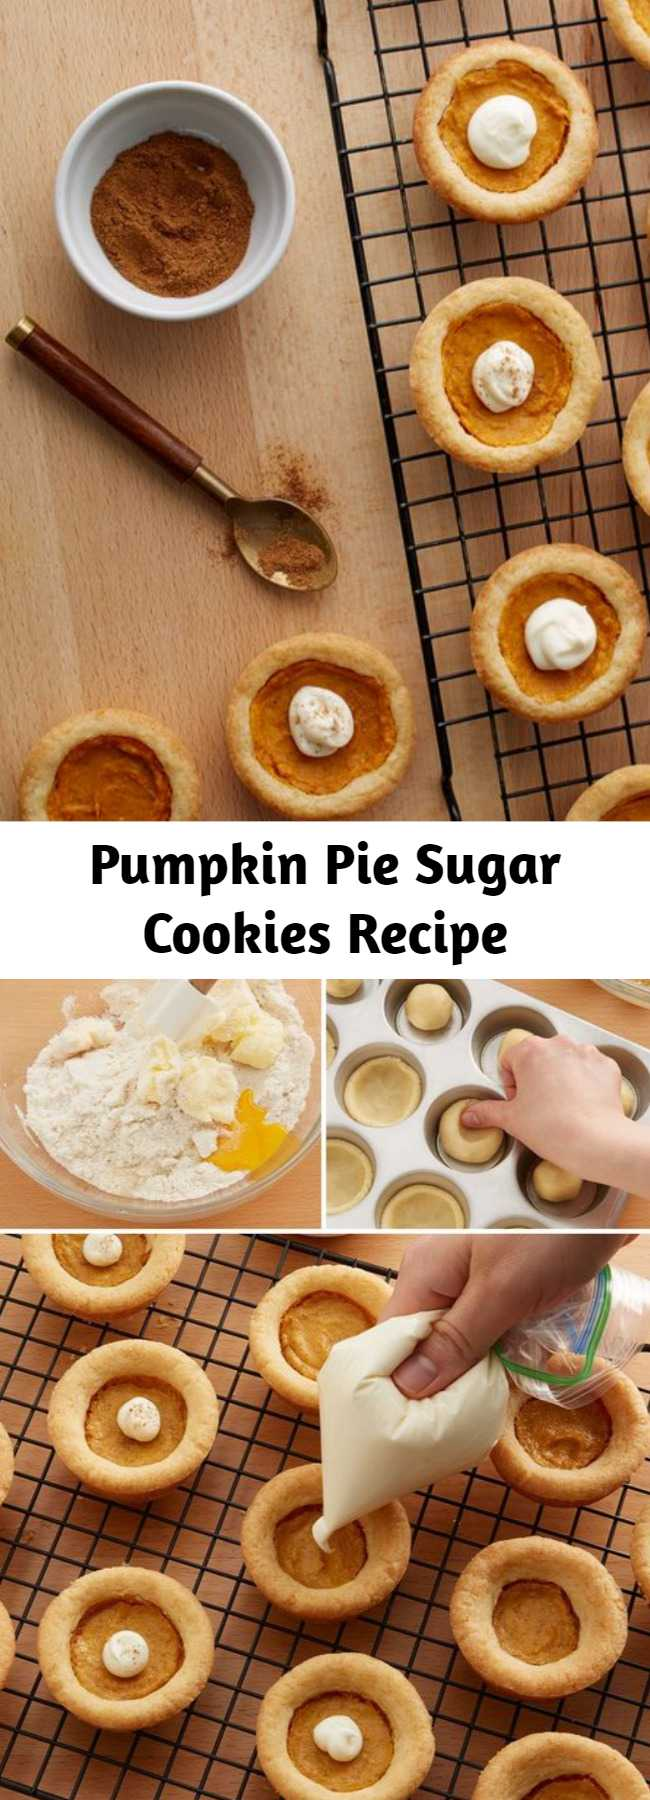 Pumpkin Pie Sugar Cookies Recipe - These too-cute pumpkin pie-inspired sugar cookies are the perfect treat for fall or your Thanksgiving spread. With their sugar cookie crusts and pumpkin pie filling, these petite sweets are perfect for pleasing kiddos, diversifying the dessert spread and cutting down on the labor-intensive pie-making process.